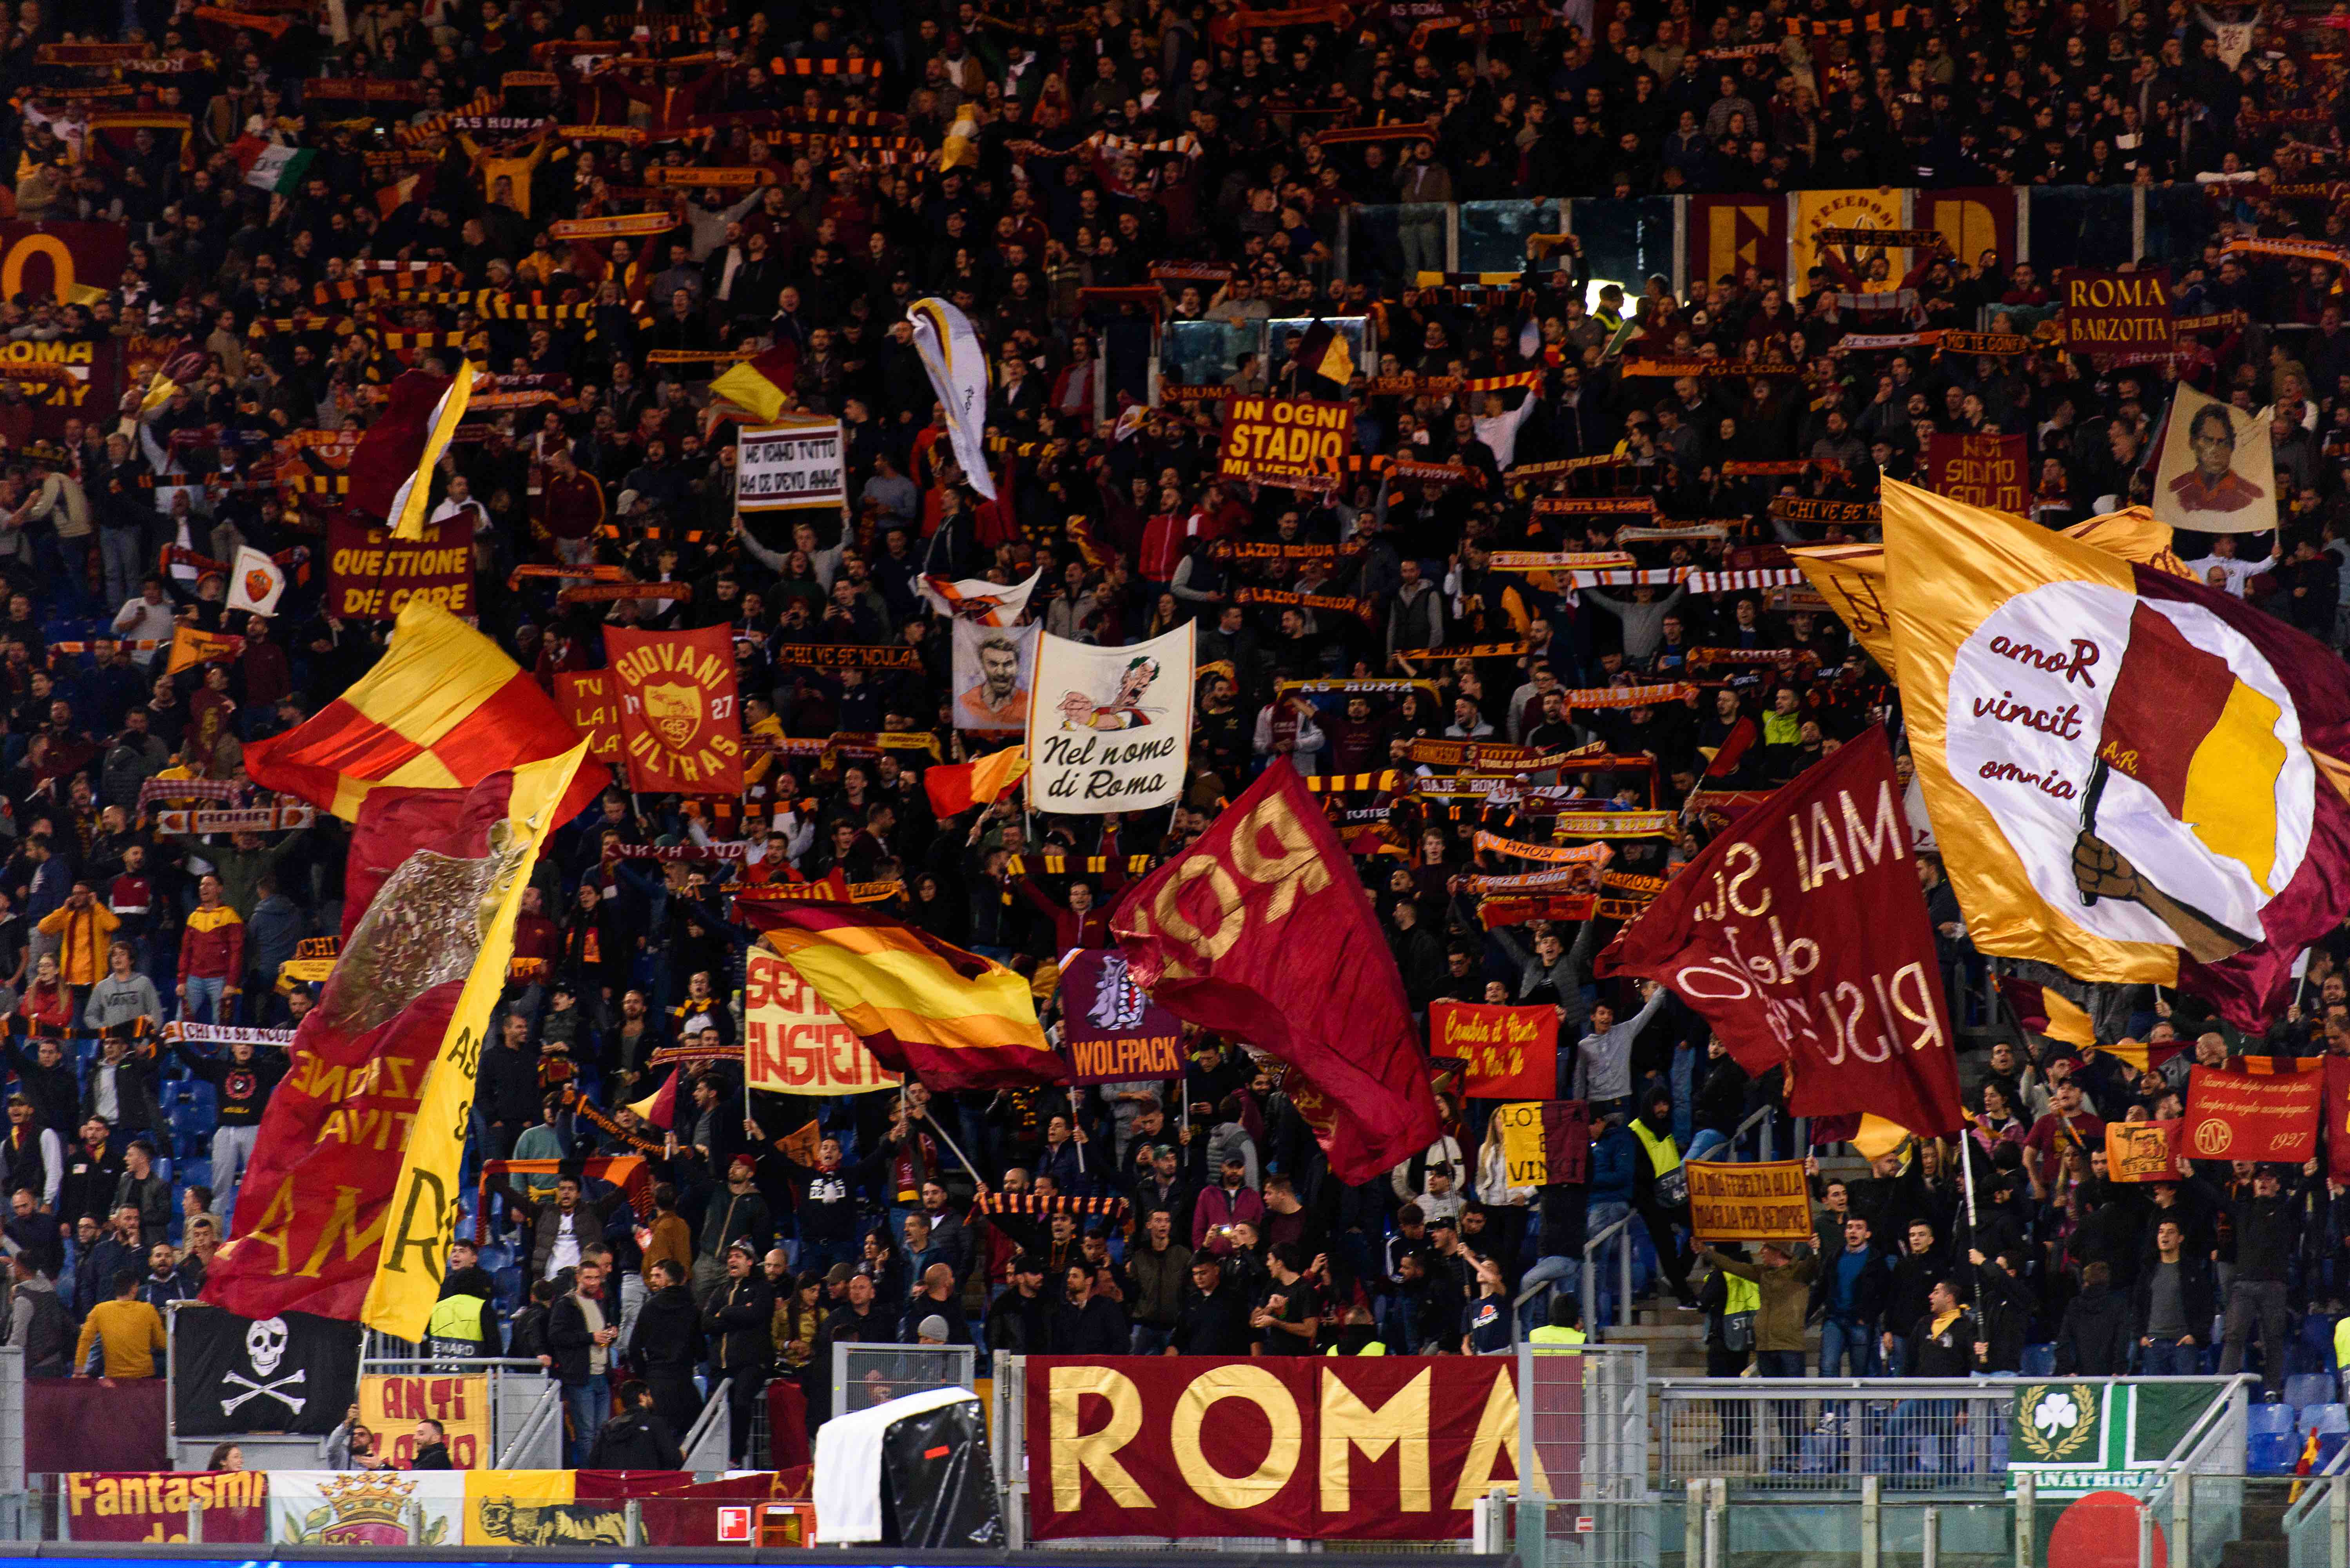 The excited supporters of AS Roma at the Stadio Olimpico in Rome.